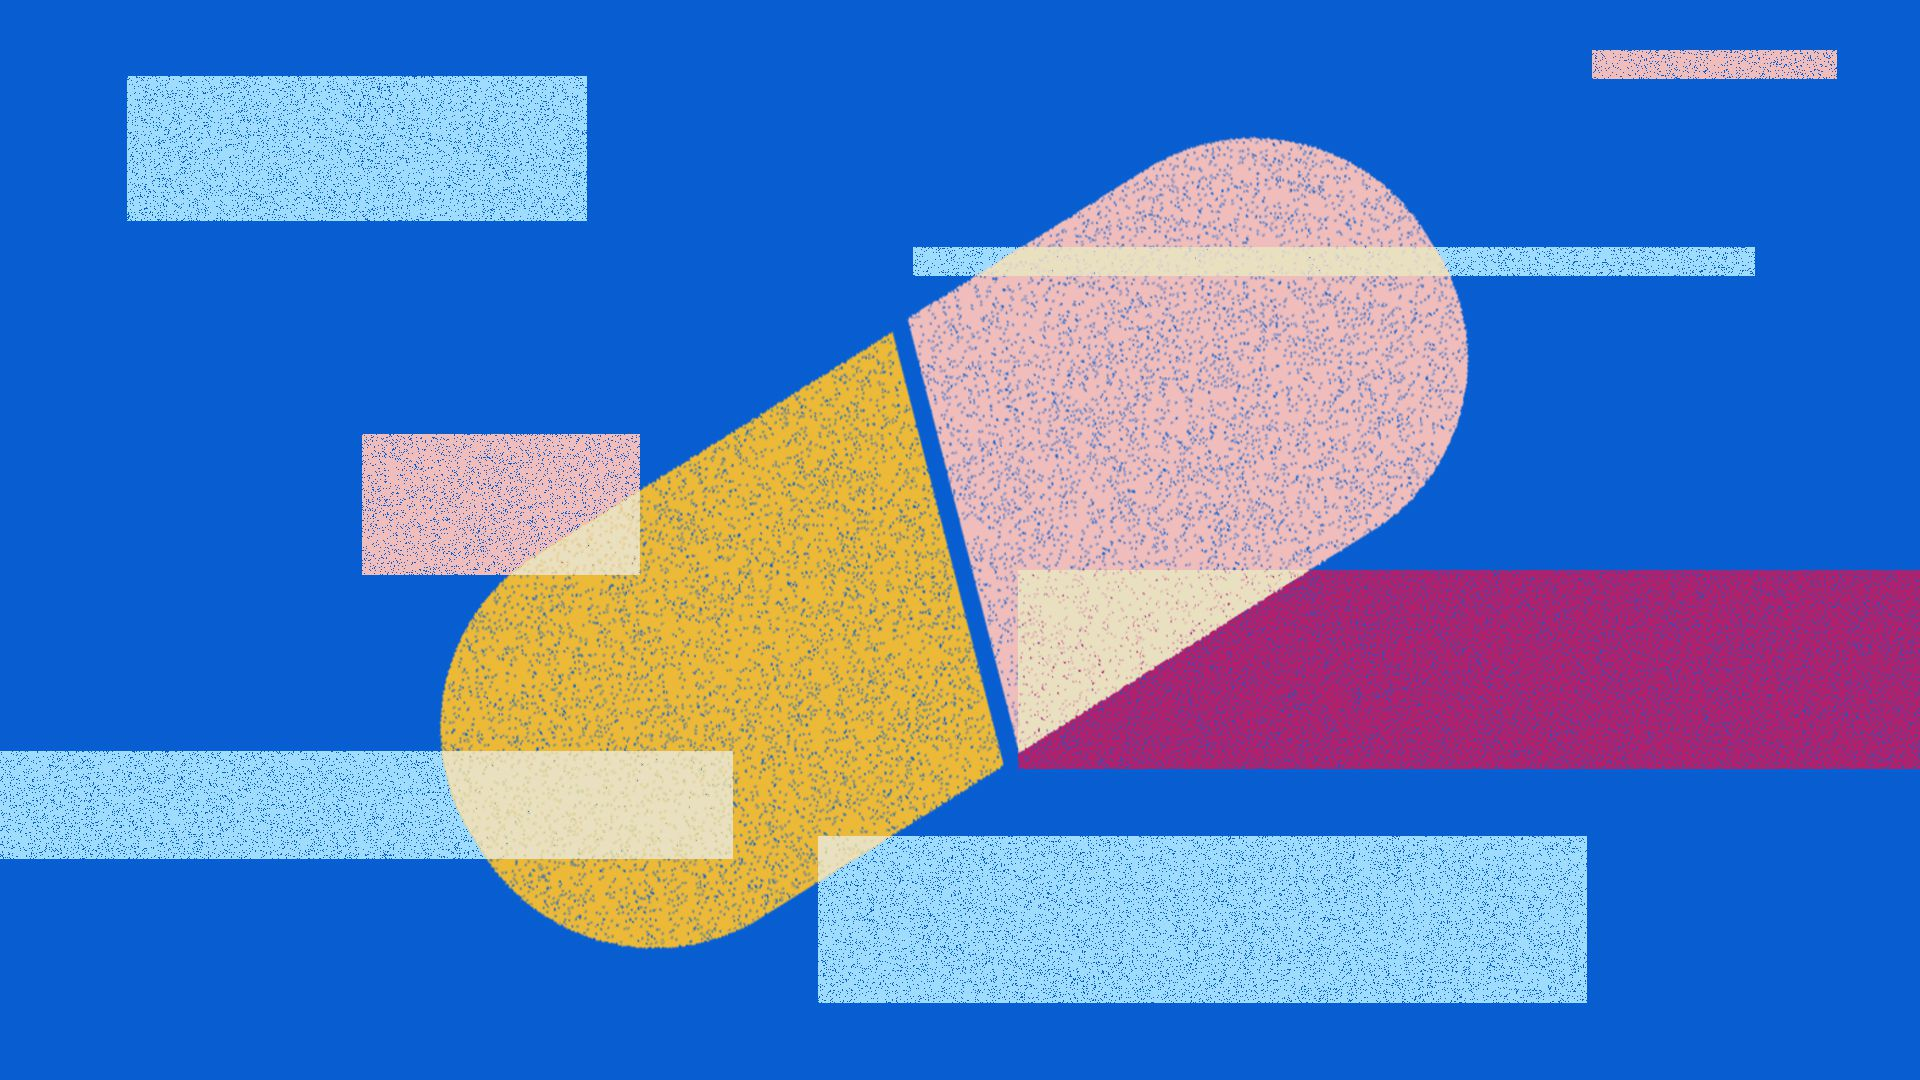 This is an illustration of a large yellow and pink pill on a blue background with abstract rectangles floating around.